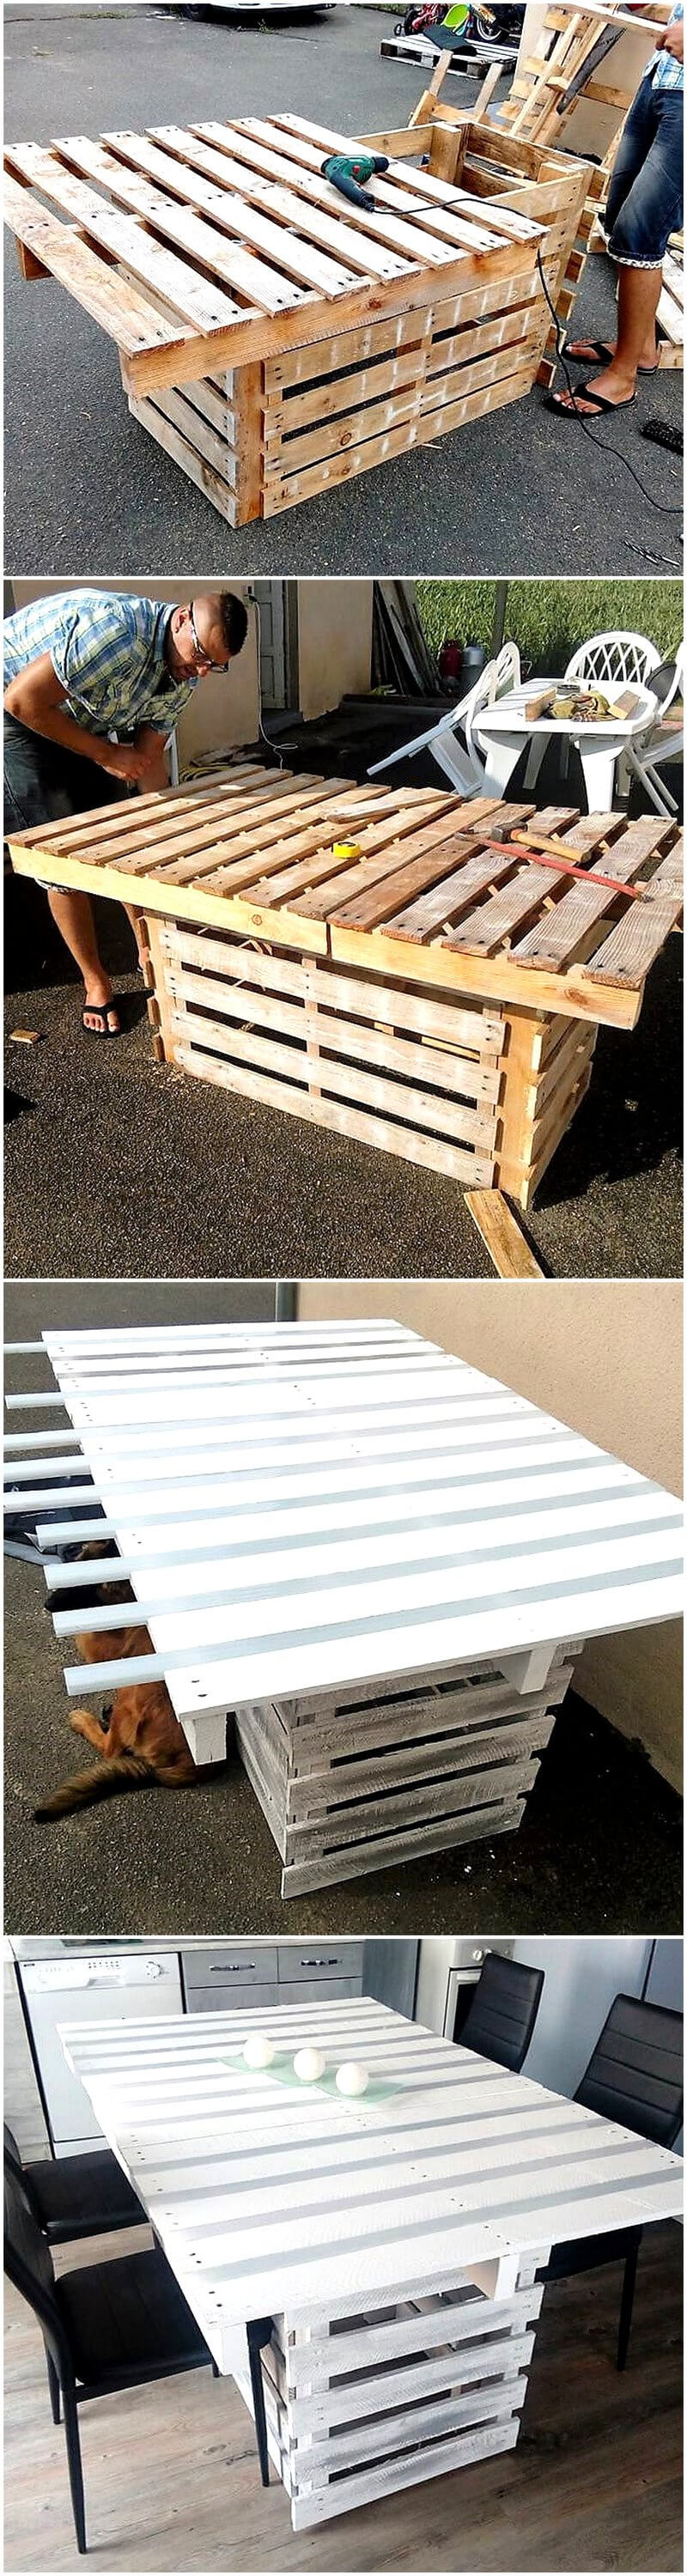 diy pallets wooden table plan